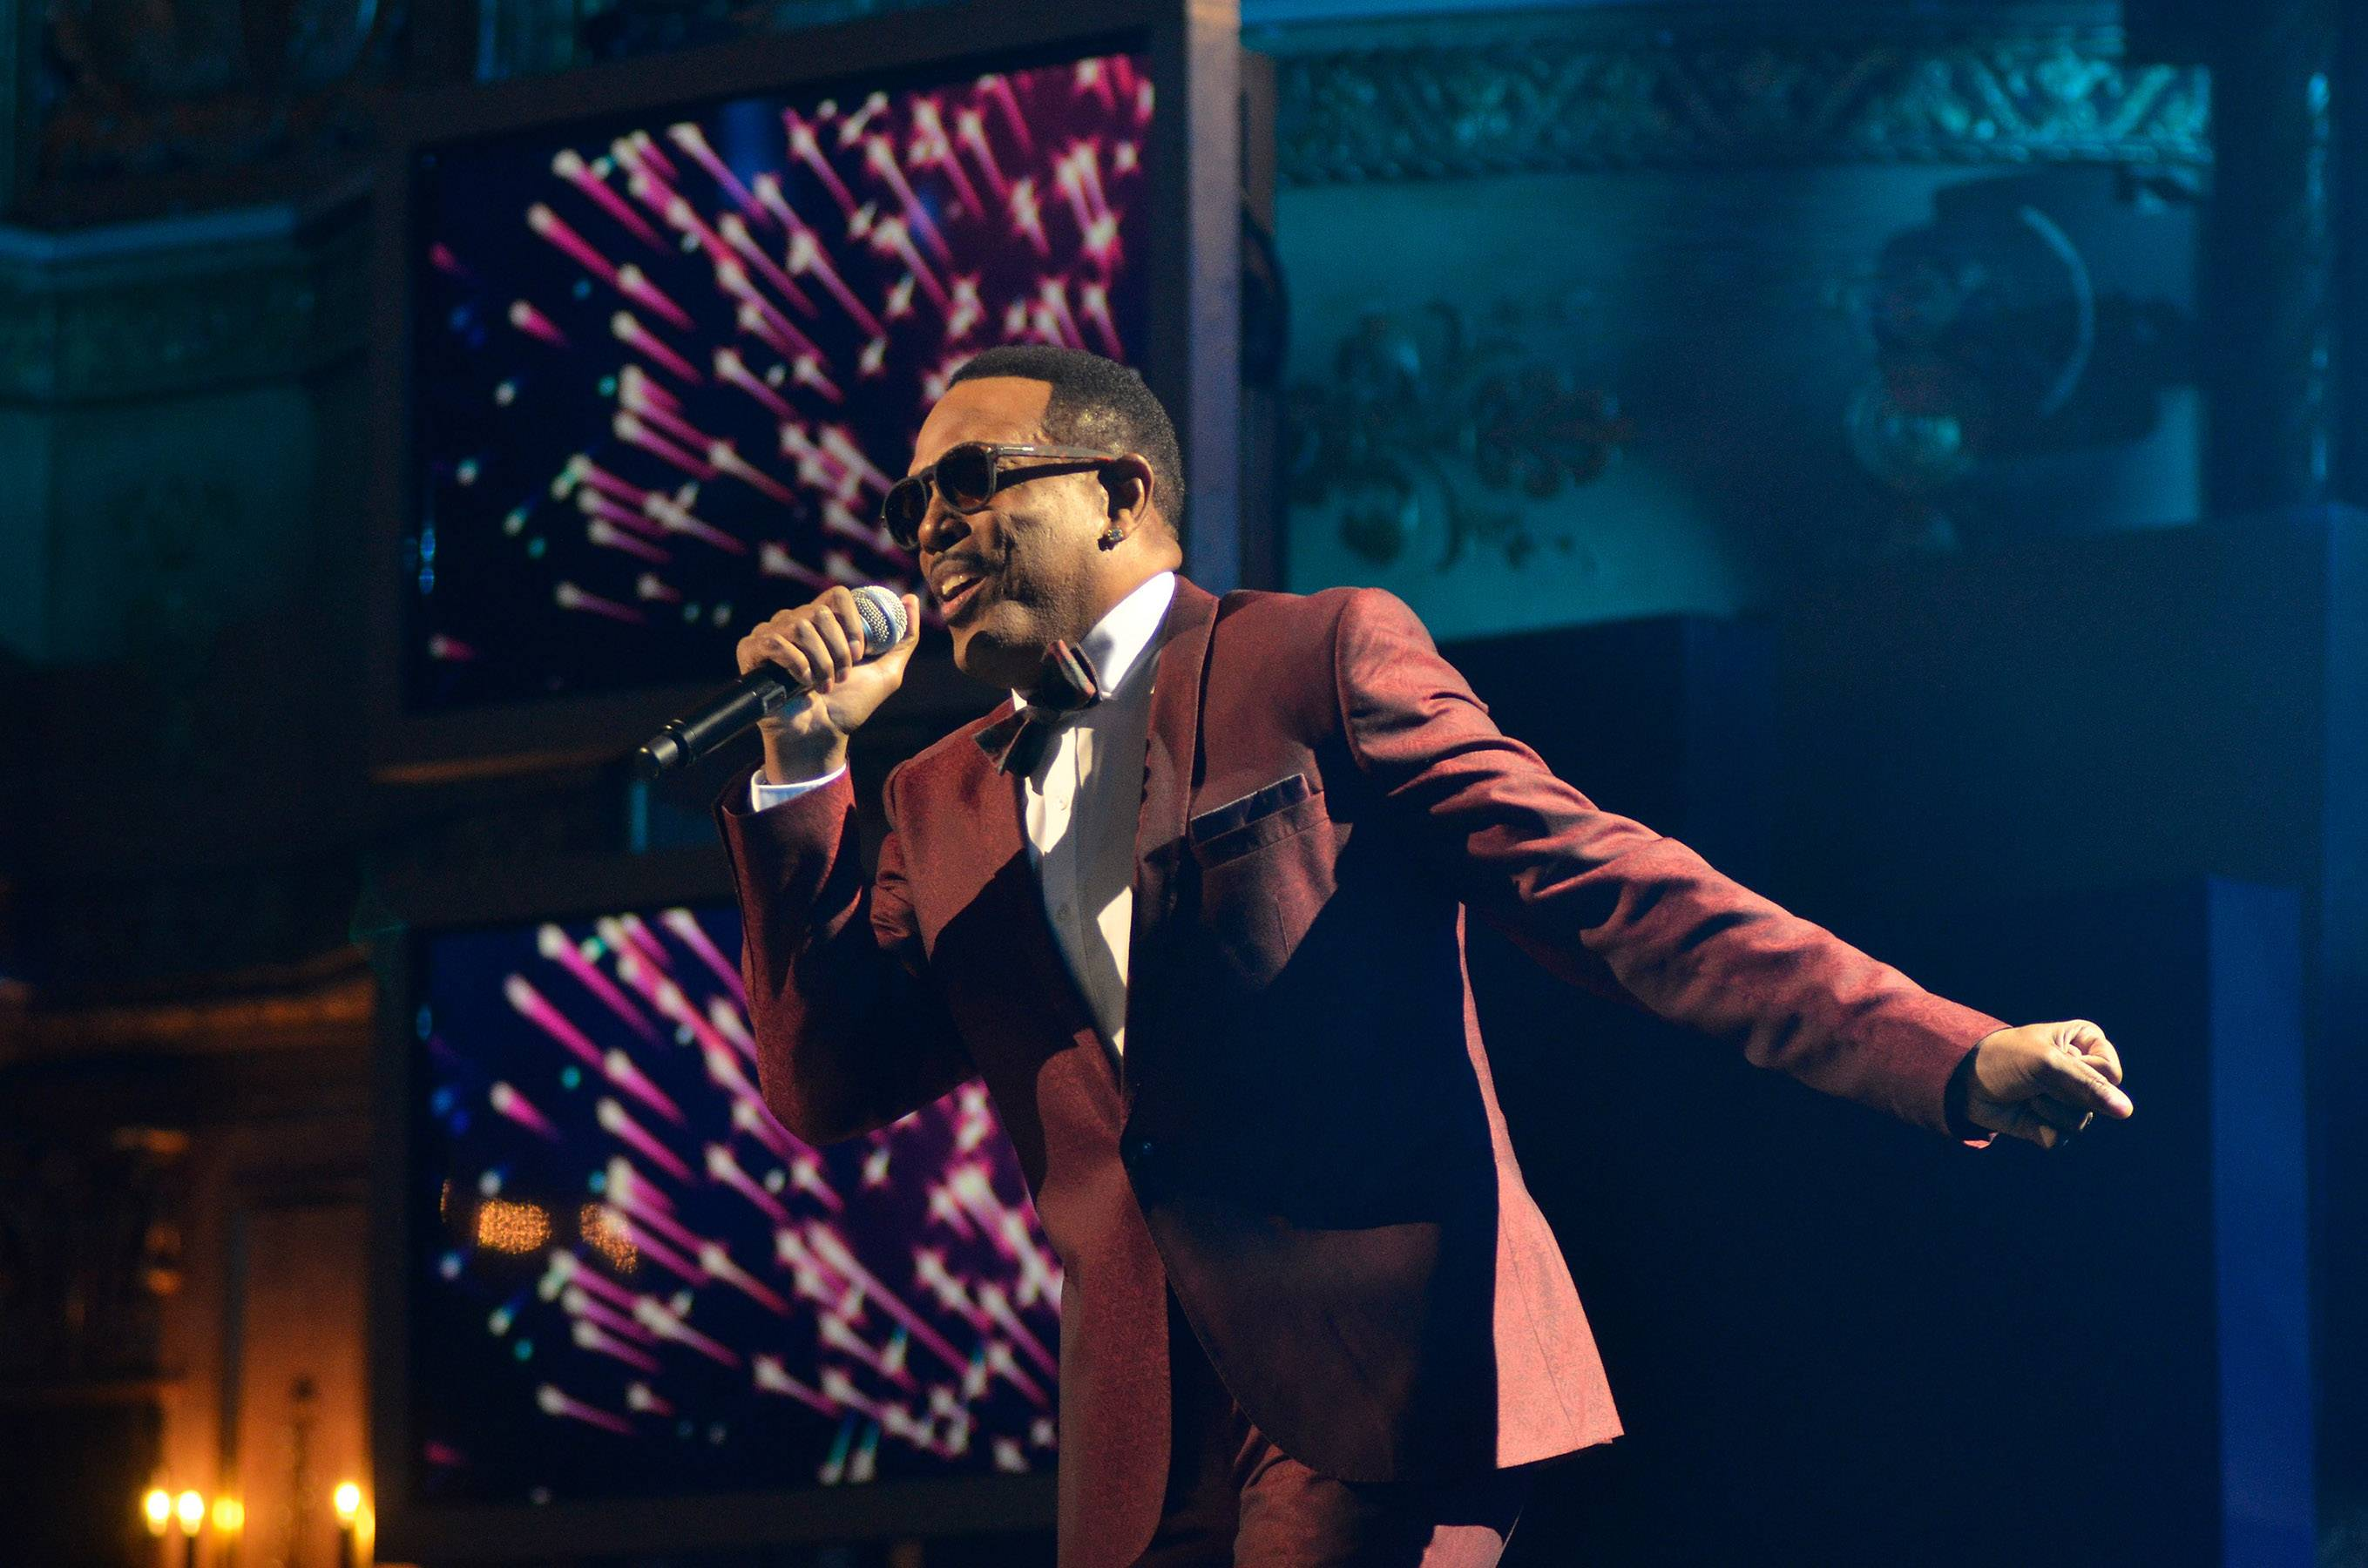 """Uncle Charlie  - Singer Charlie Wilson bangs out a stellar performance of """"Bound 2"""" and some new music from his upcoming album Forever Charlie. (Photo: Kris Connor/BET/Getty Images for BET)"""